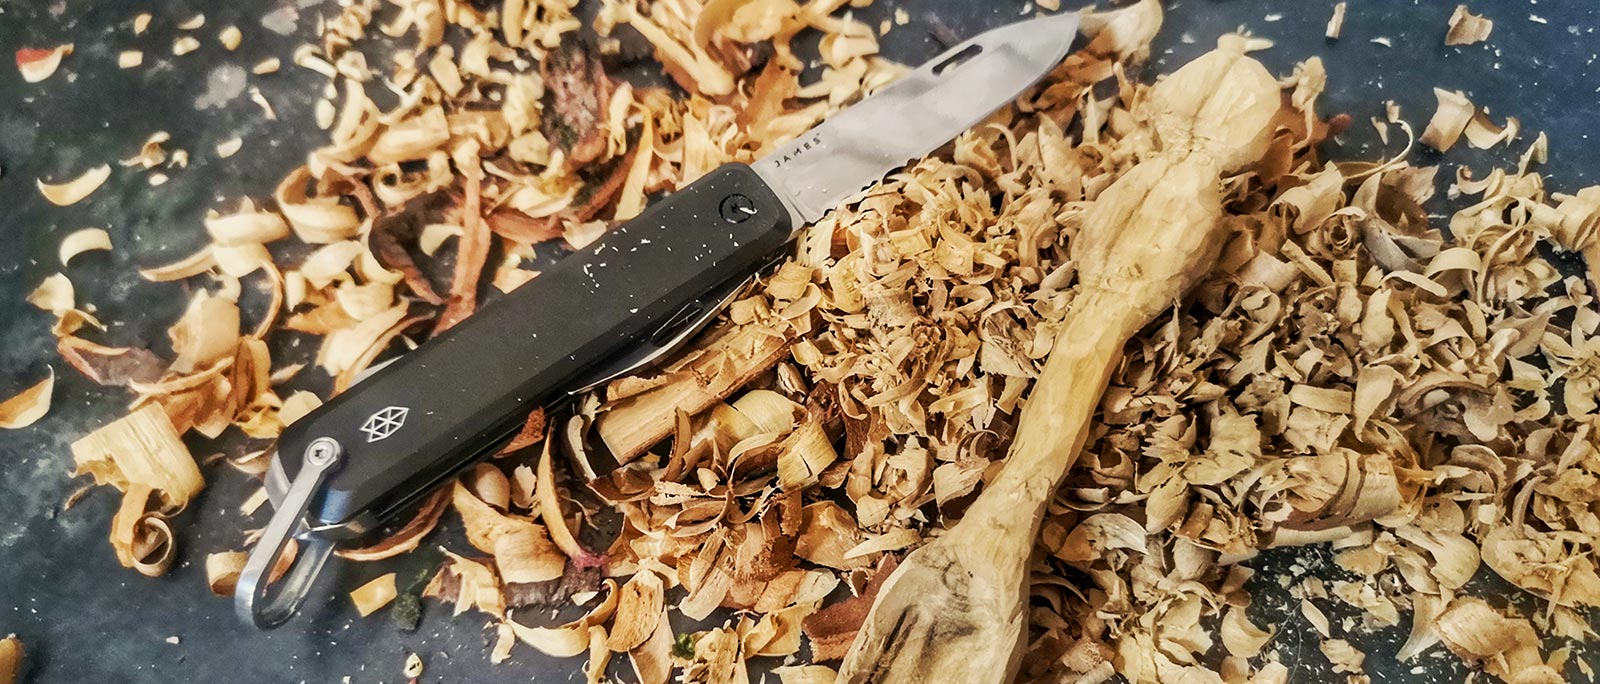 Simple Spoon Carving | WildBounds